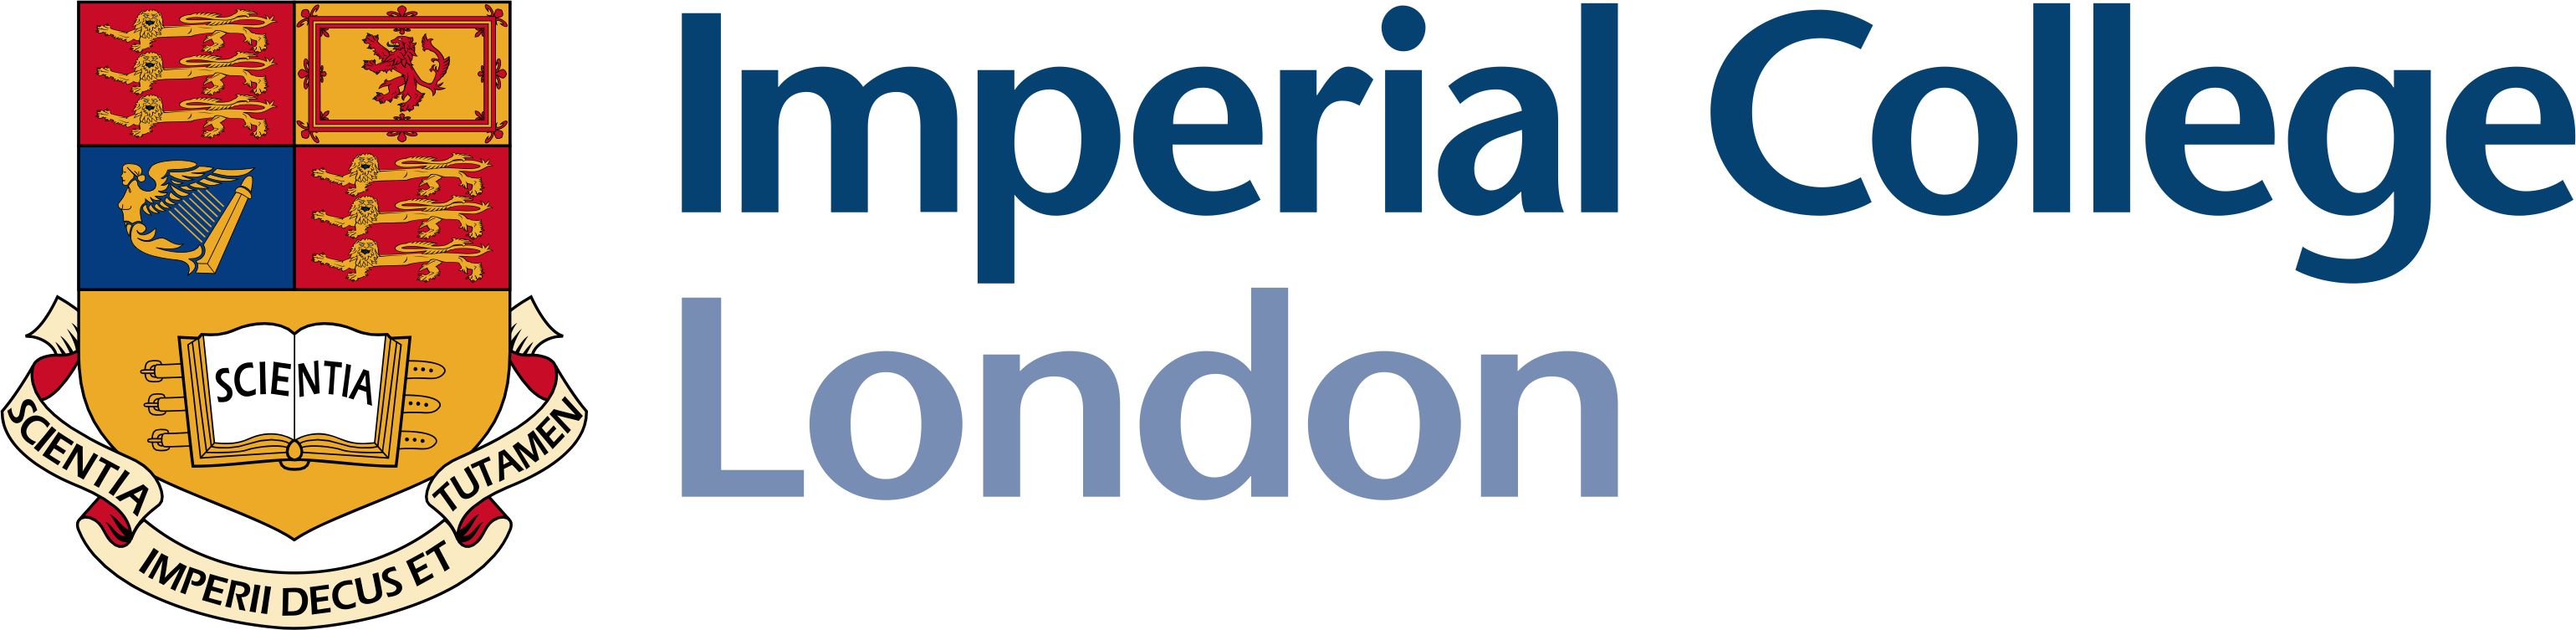 Imperial College London2